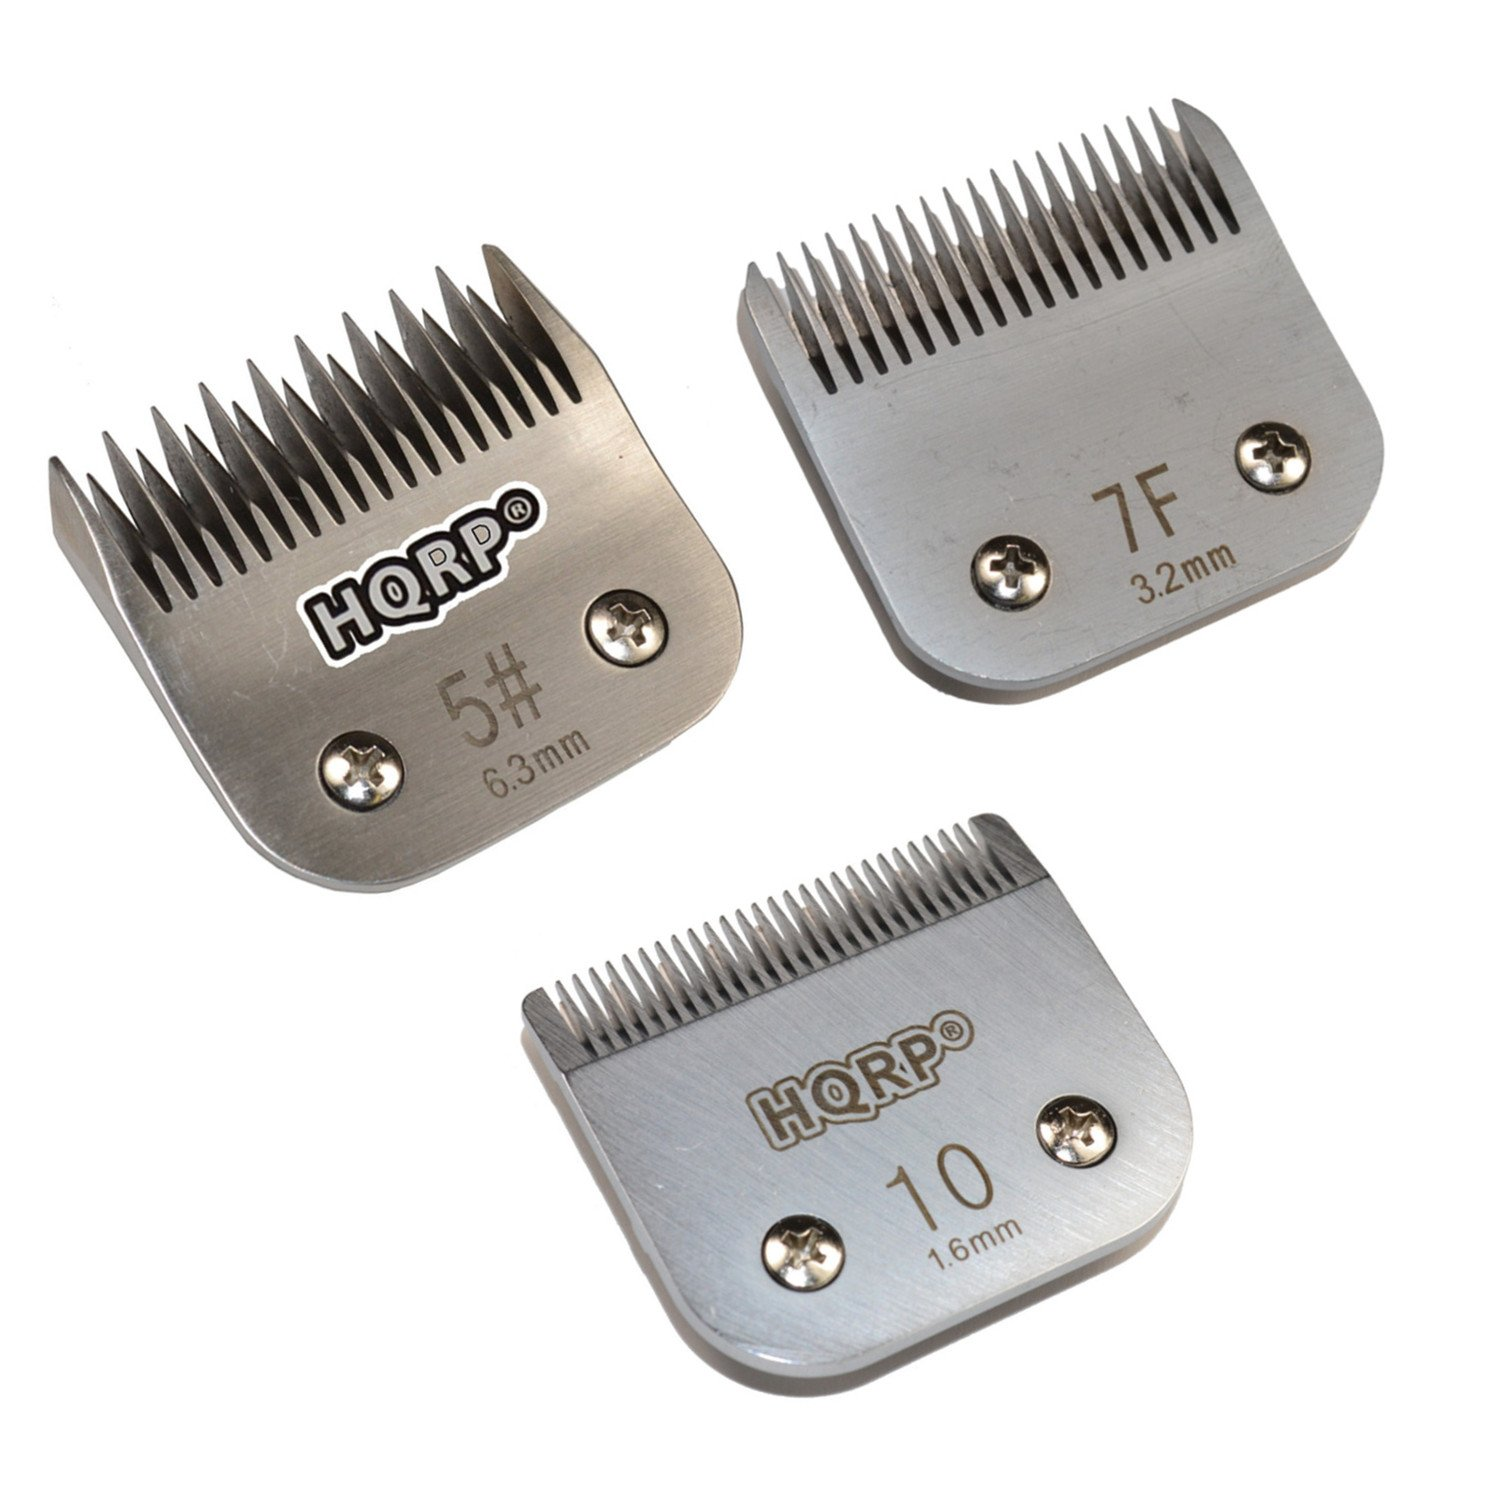 HQRP 3pcs Kit: Clipper Blades - Sizes 5 / 7F /10 - for Dog Grooming Clipping Trimming - Scottish/Airedale & Welsh Terrier, Miniature Schnauzer, Bedlington Terrier etc Coaster